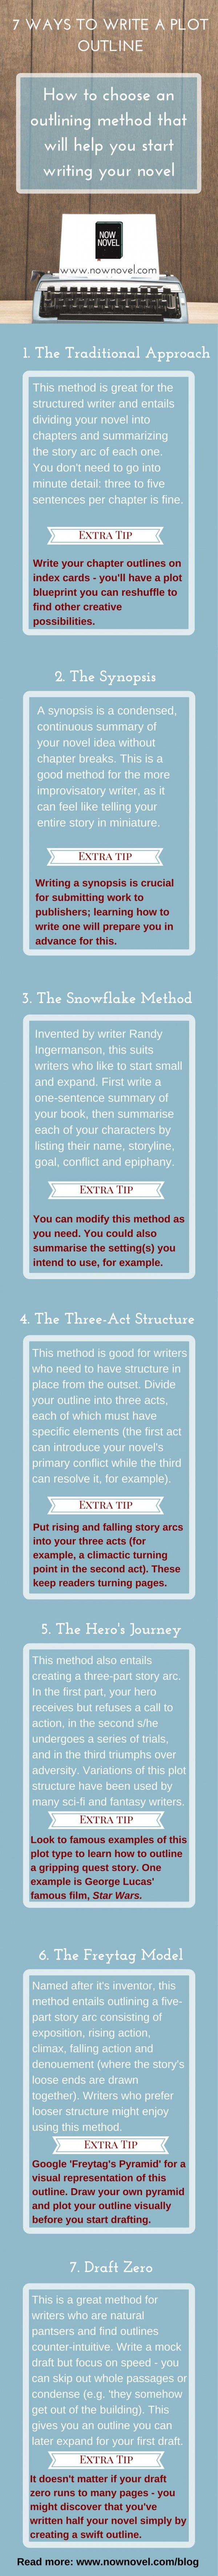 How To Write A Plot Outline Infographic